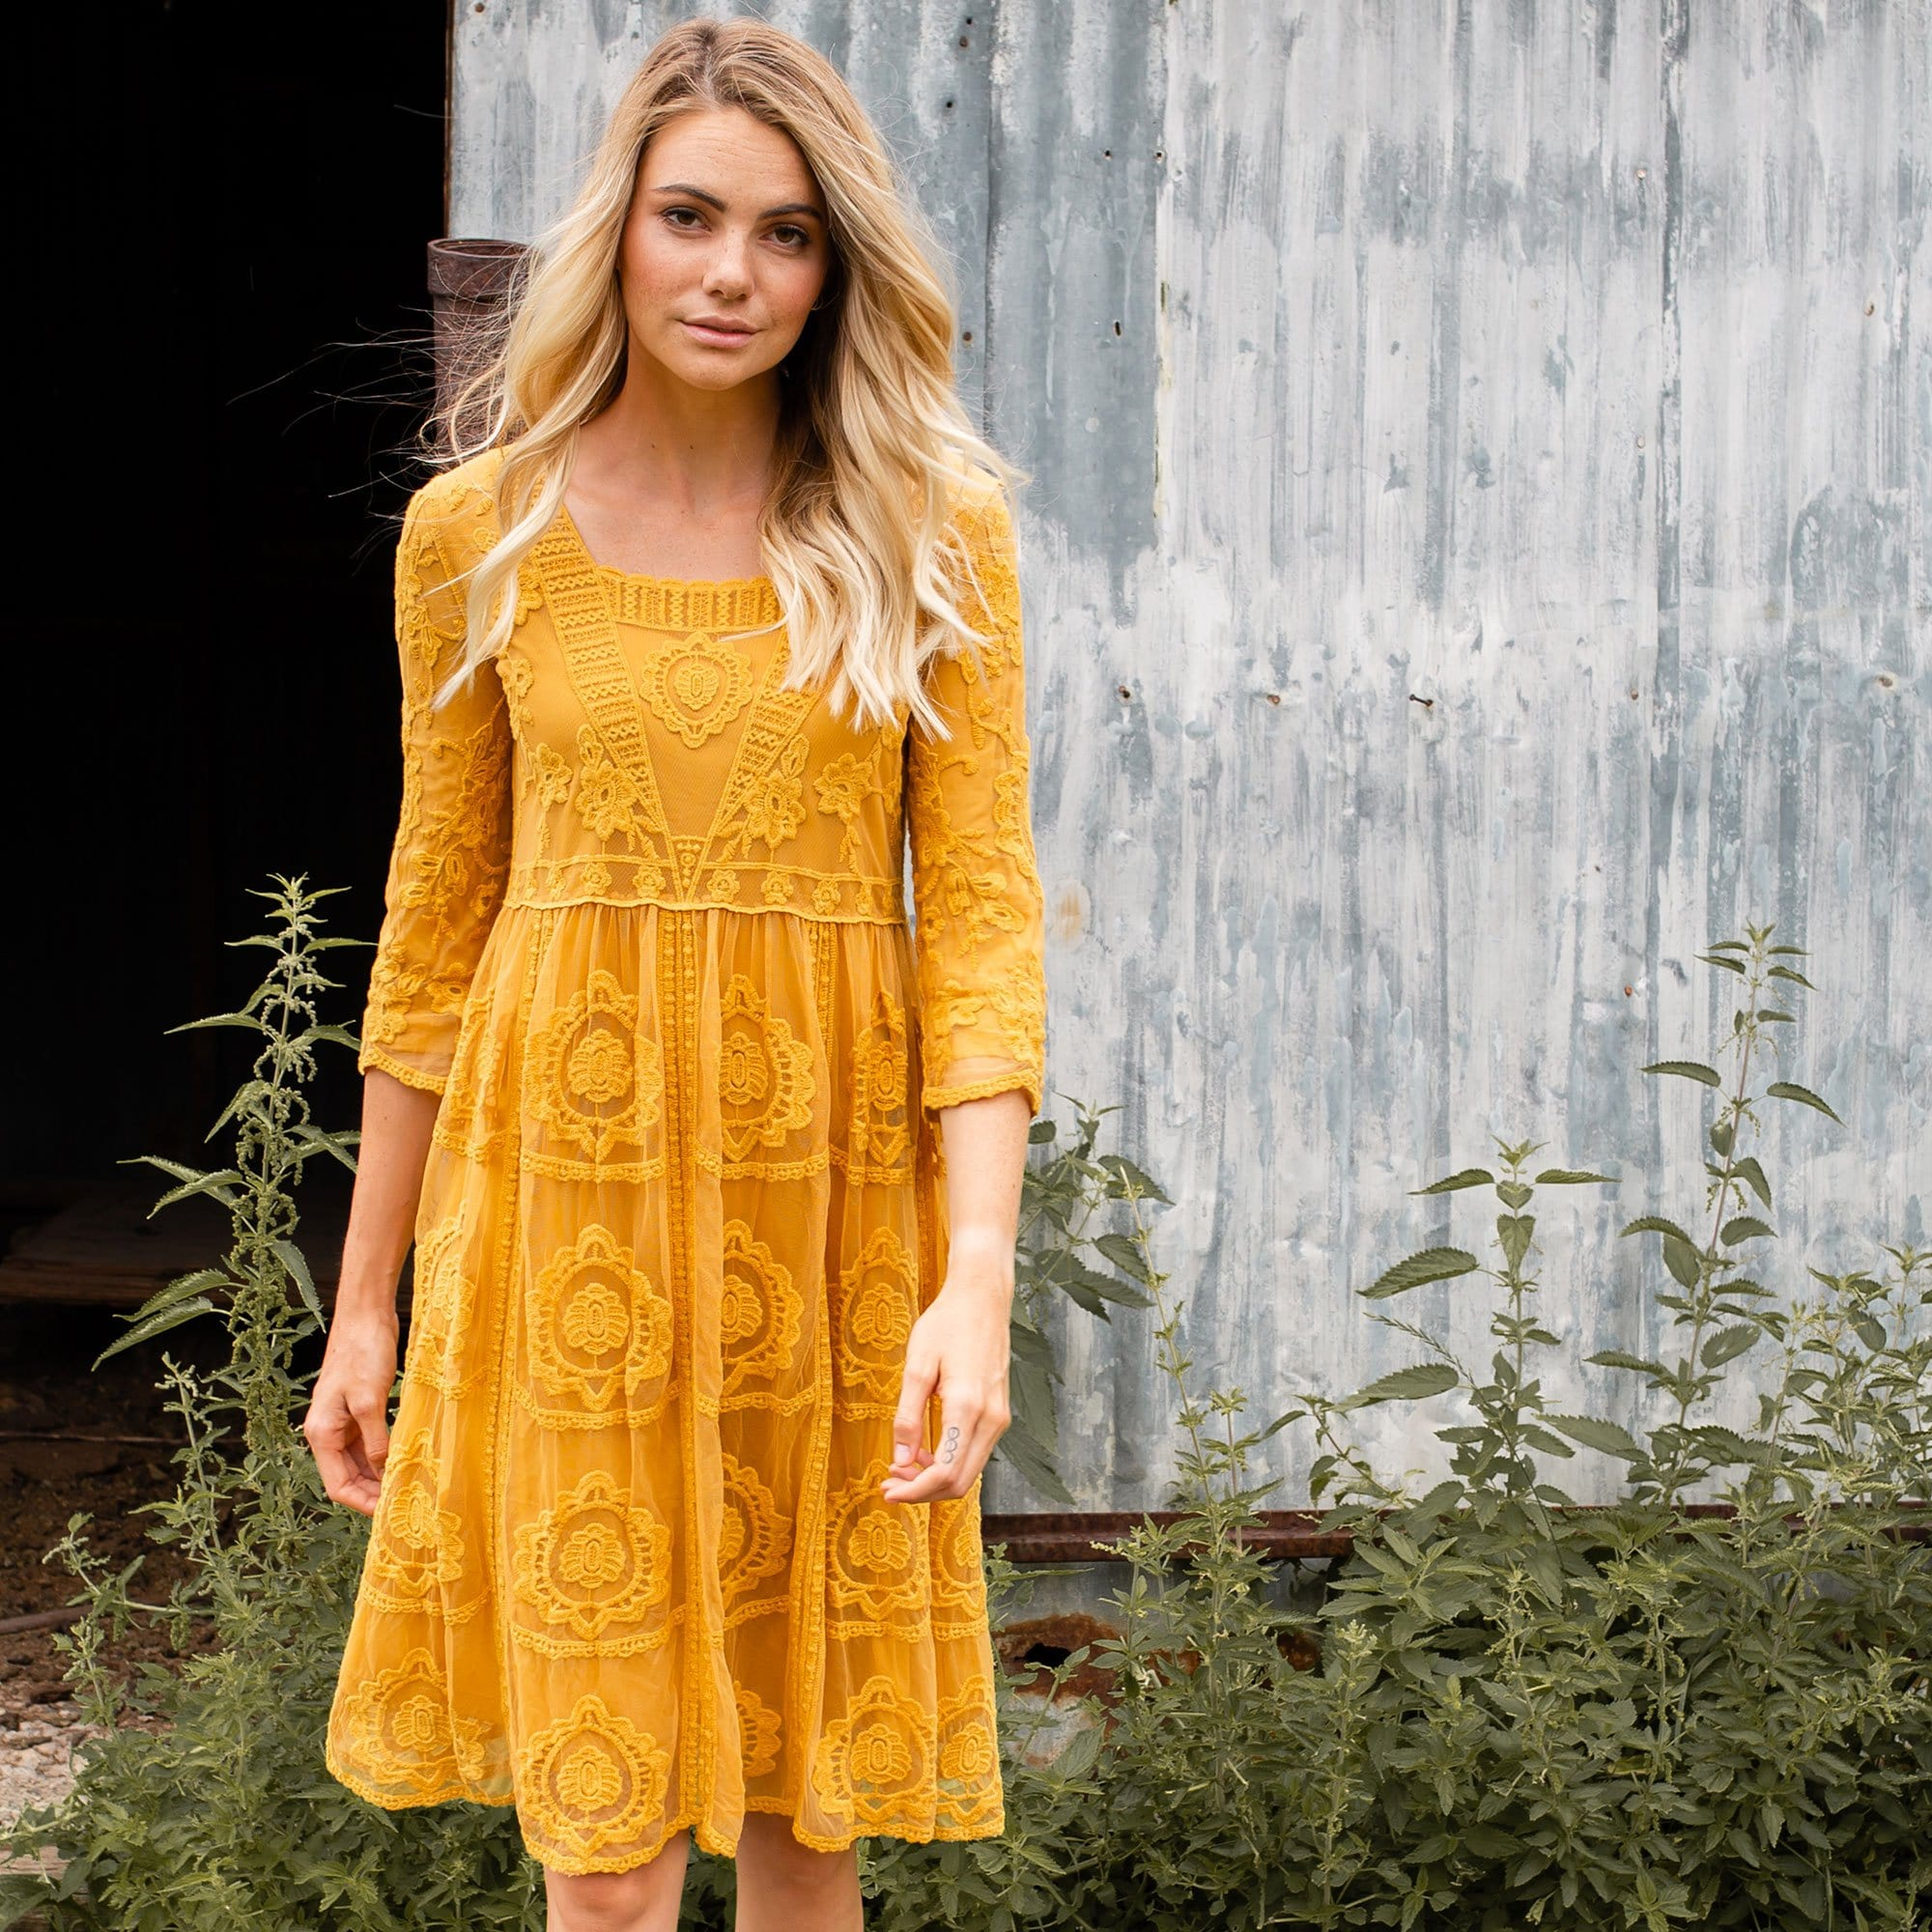 Scalloped Embroidered Dress